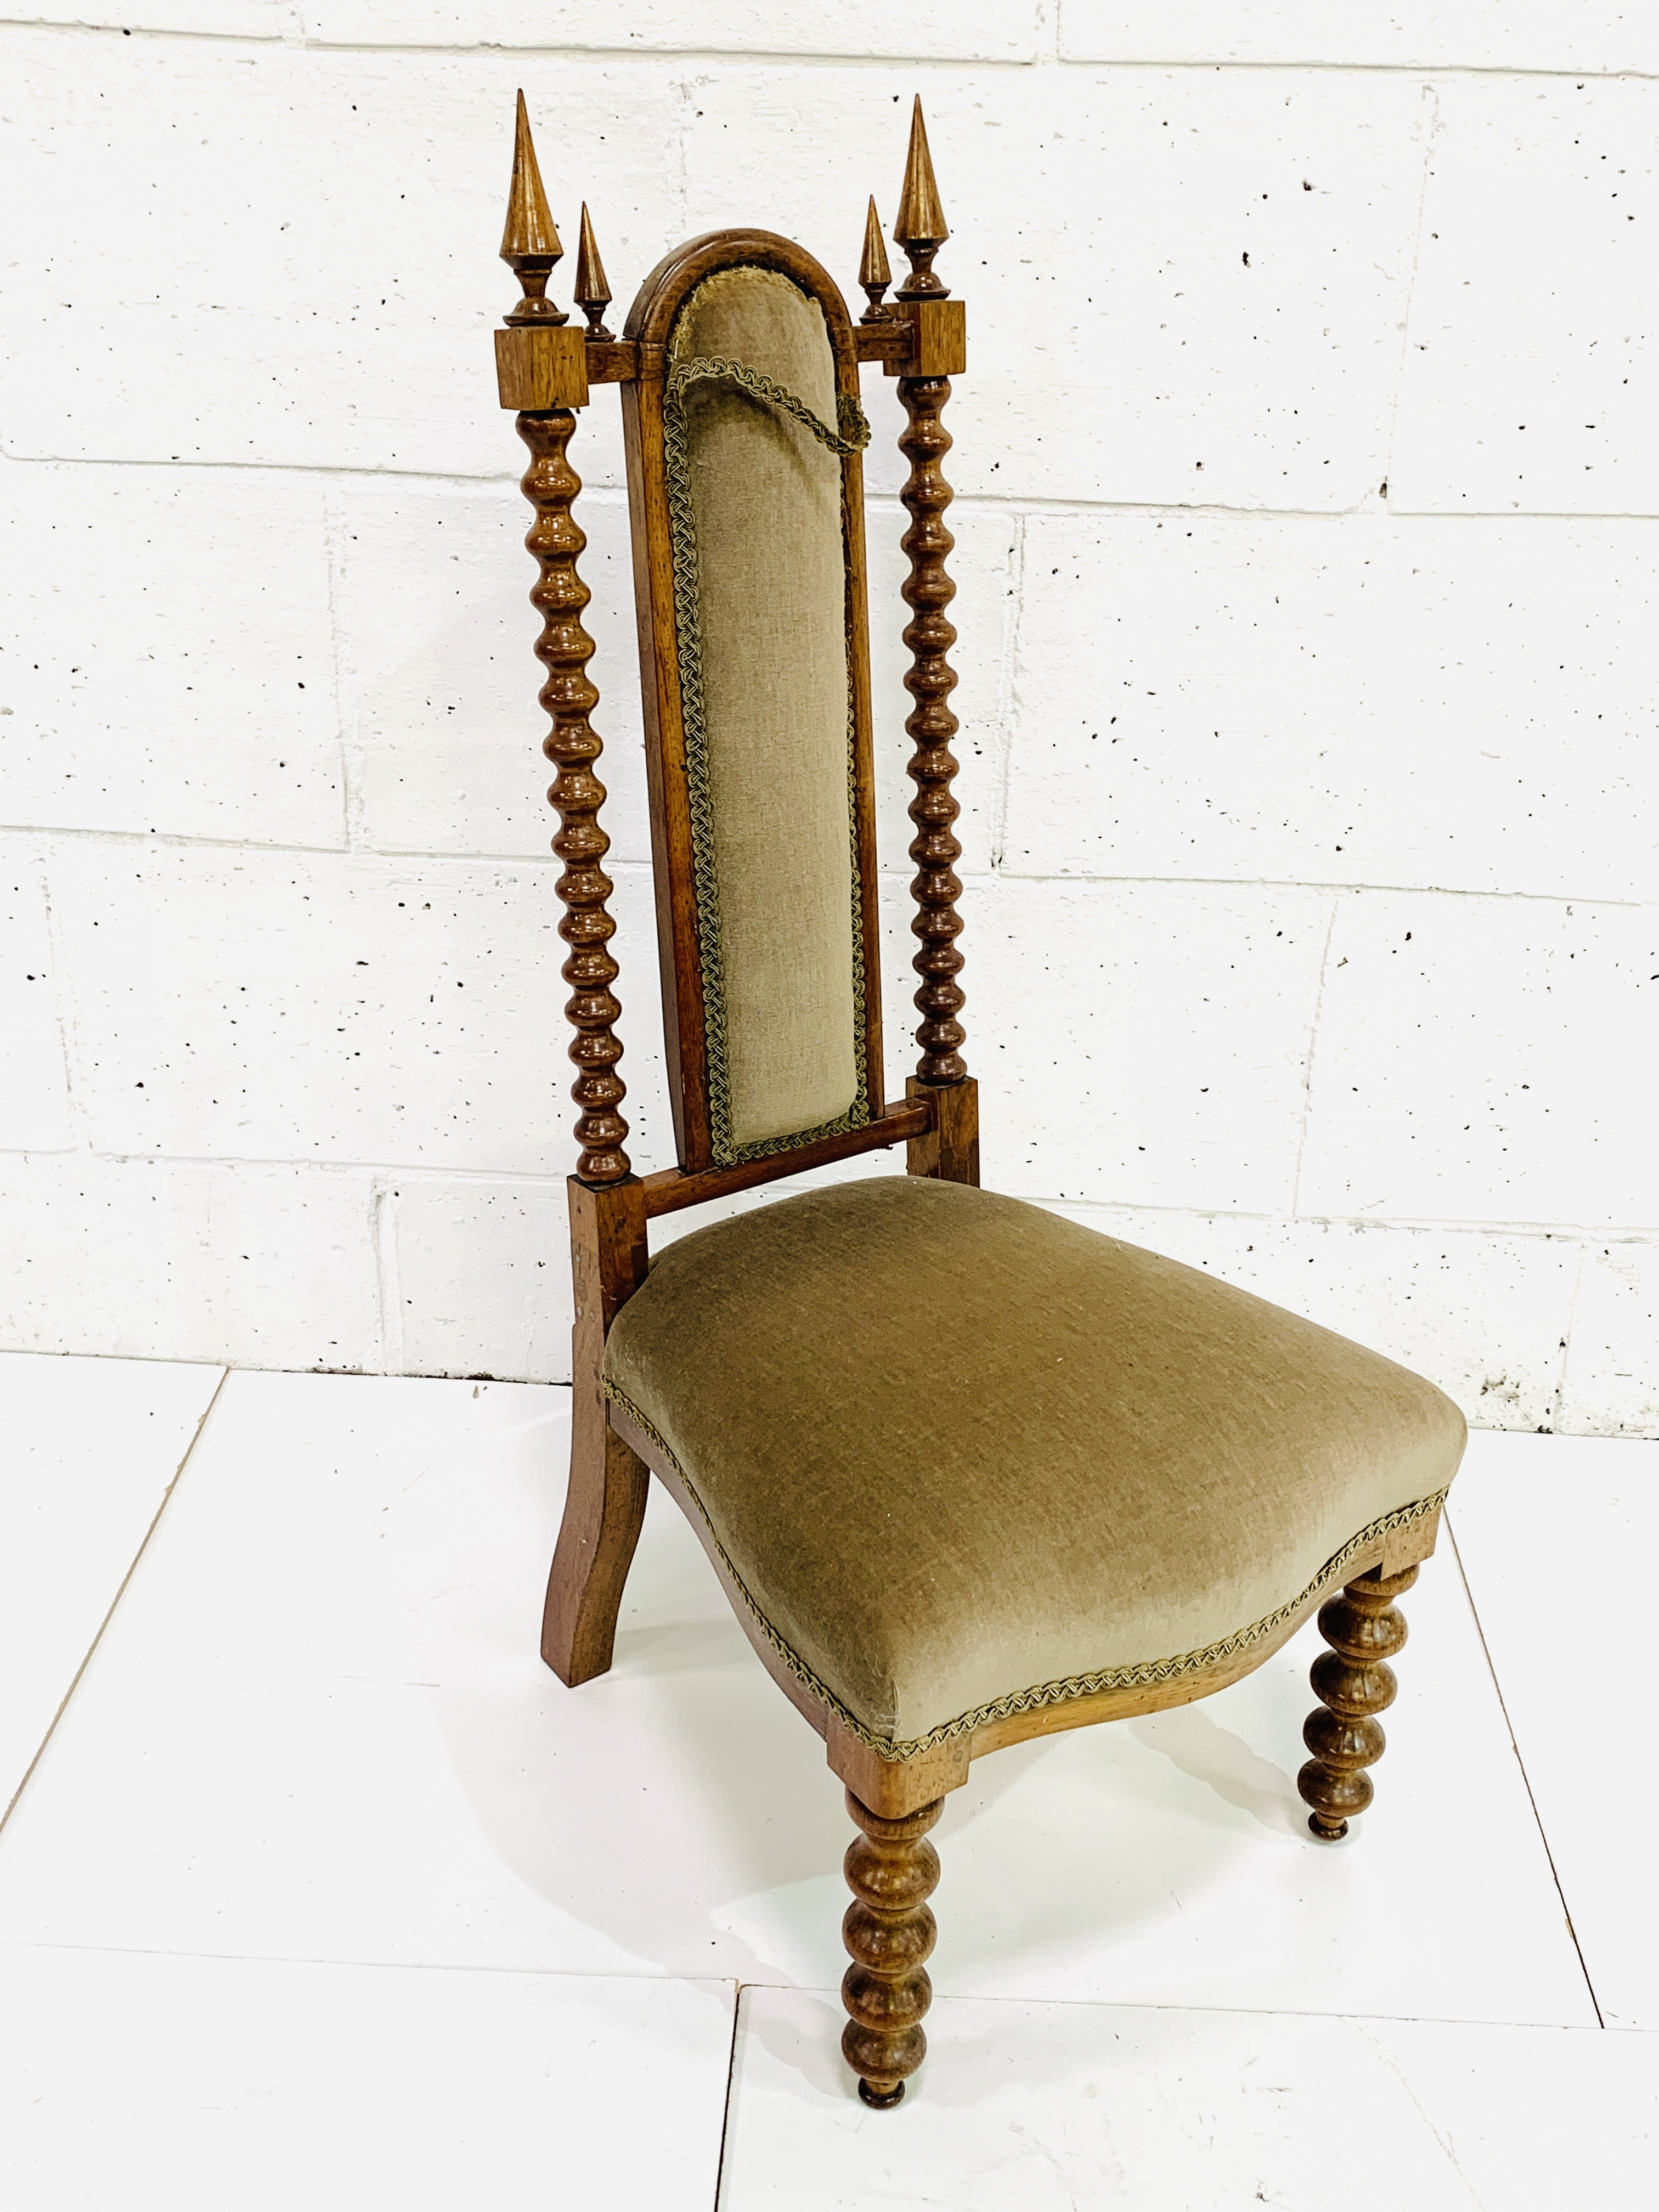 Upholstered decorative hall chair - Image 3 of 4